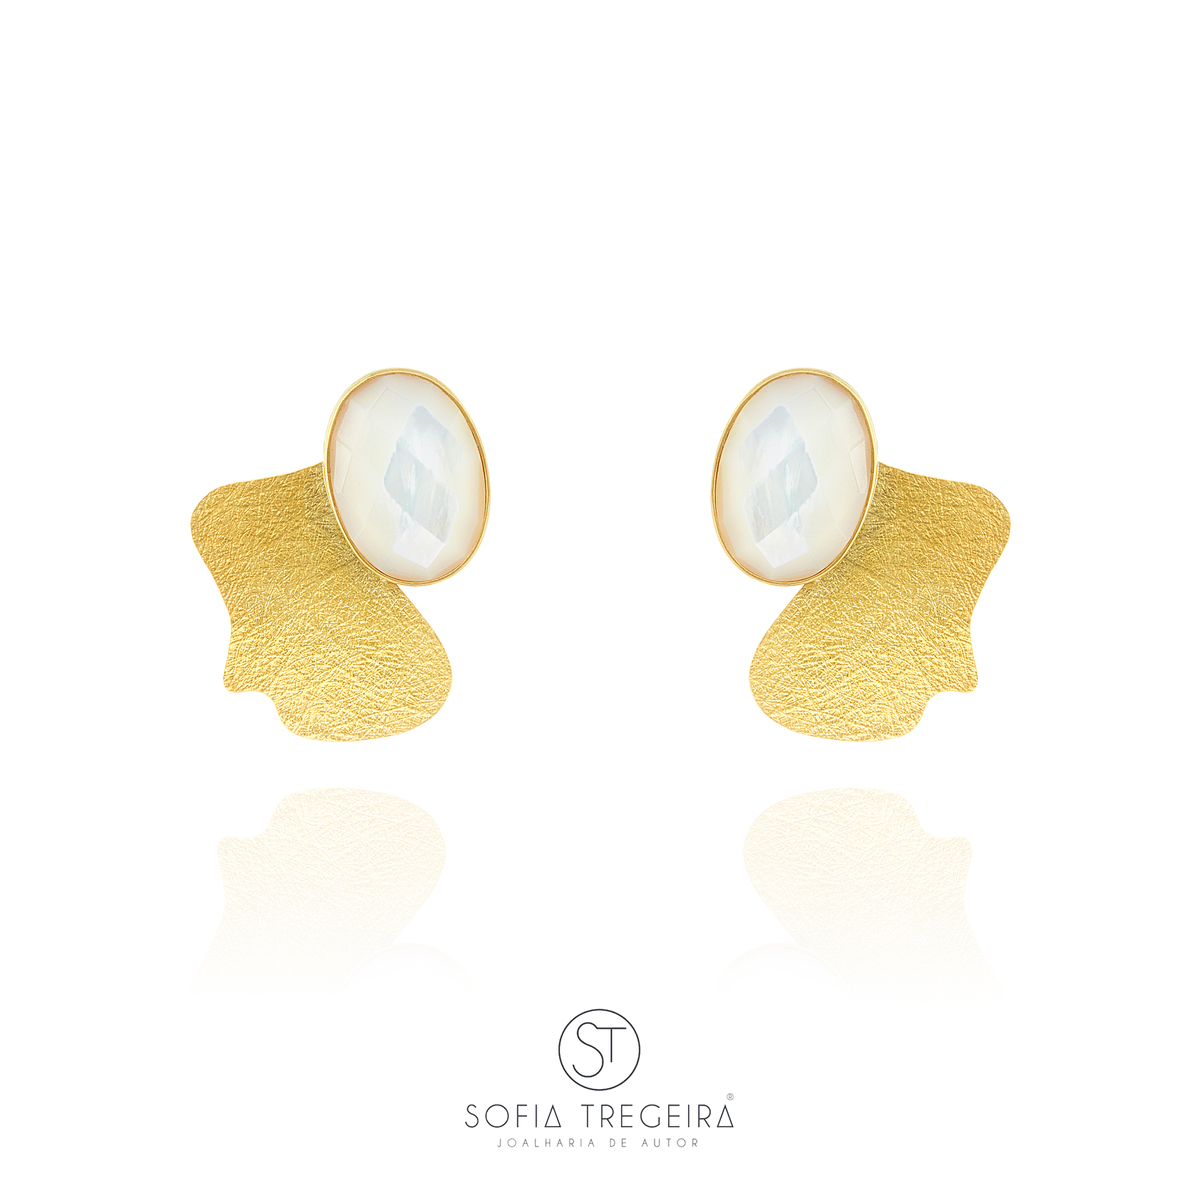 joalharia de autor; joalharia de luxo sofia tregeira; wild poppy; collection; brincos; earrings ; prata; silver; ouro; gold; joalharia; jewellery; luxury; jóias de casamento; wedding jewellery; noiva; bride; jóias de luxo; joalharia portuguesa